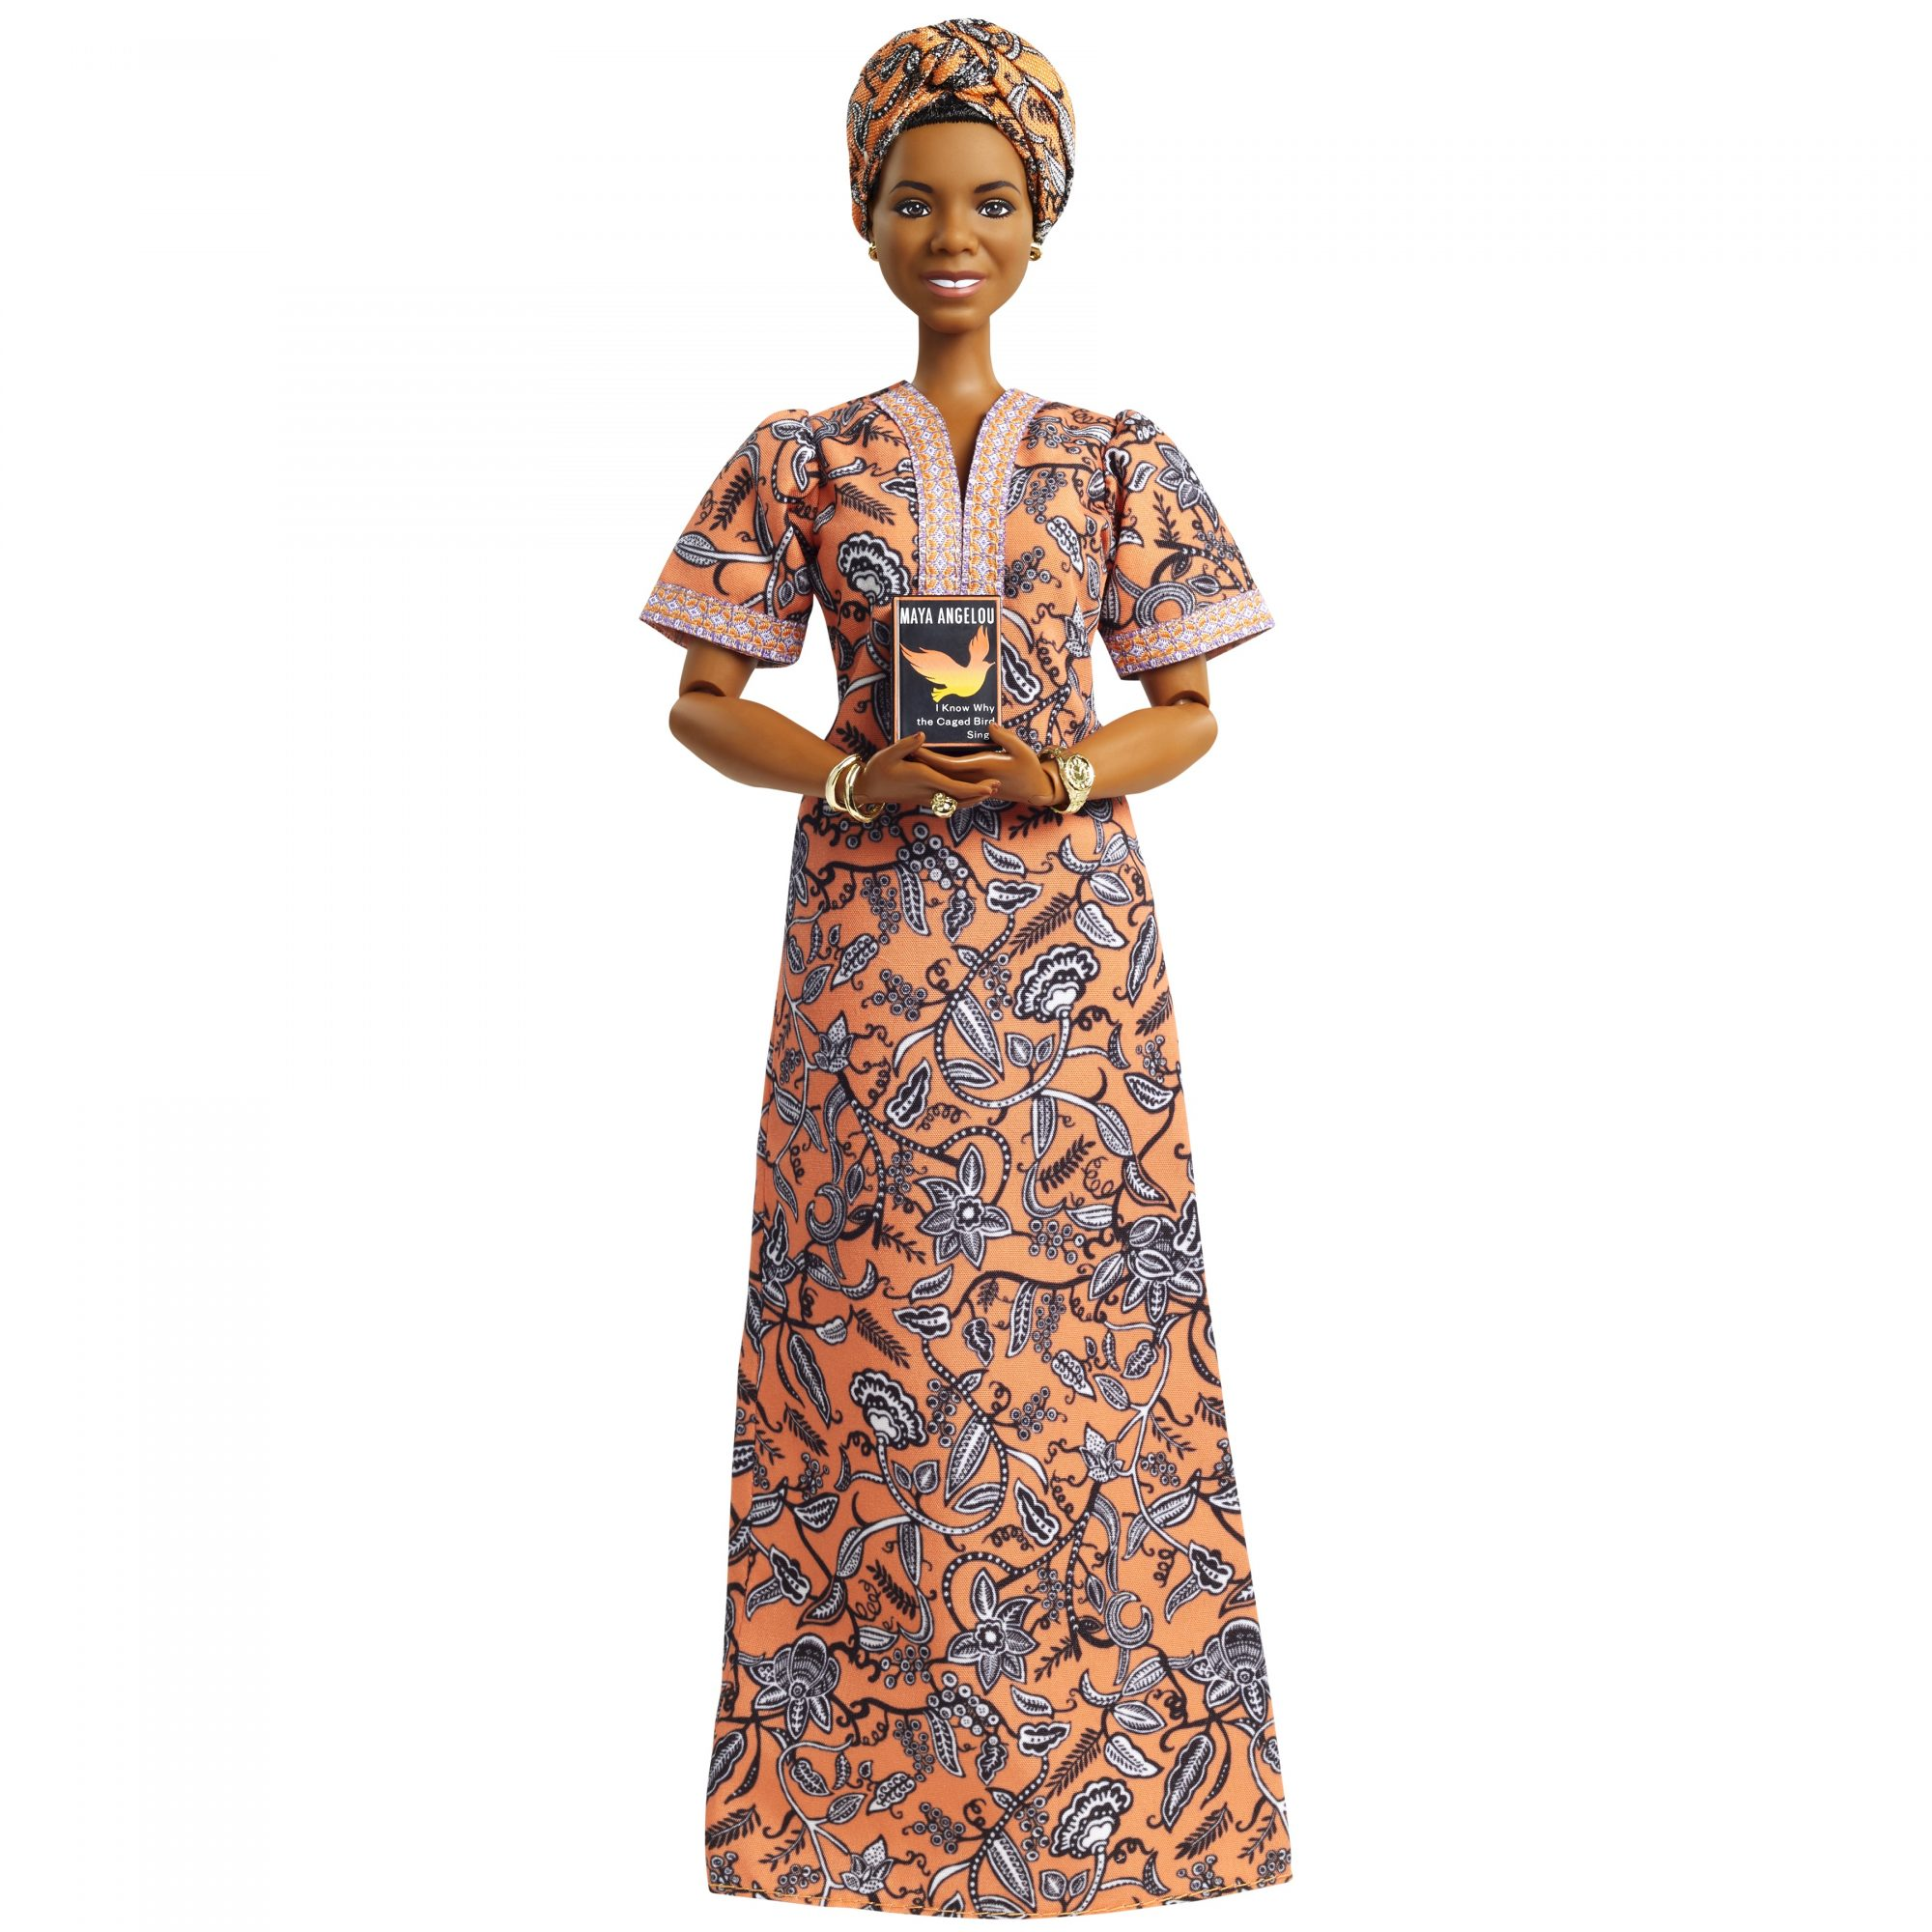 """Maya Angelou Barbie Doll Holding """"I Know Why the Caged Bird Sings"""" Book"""